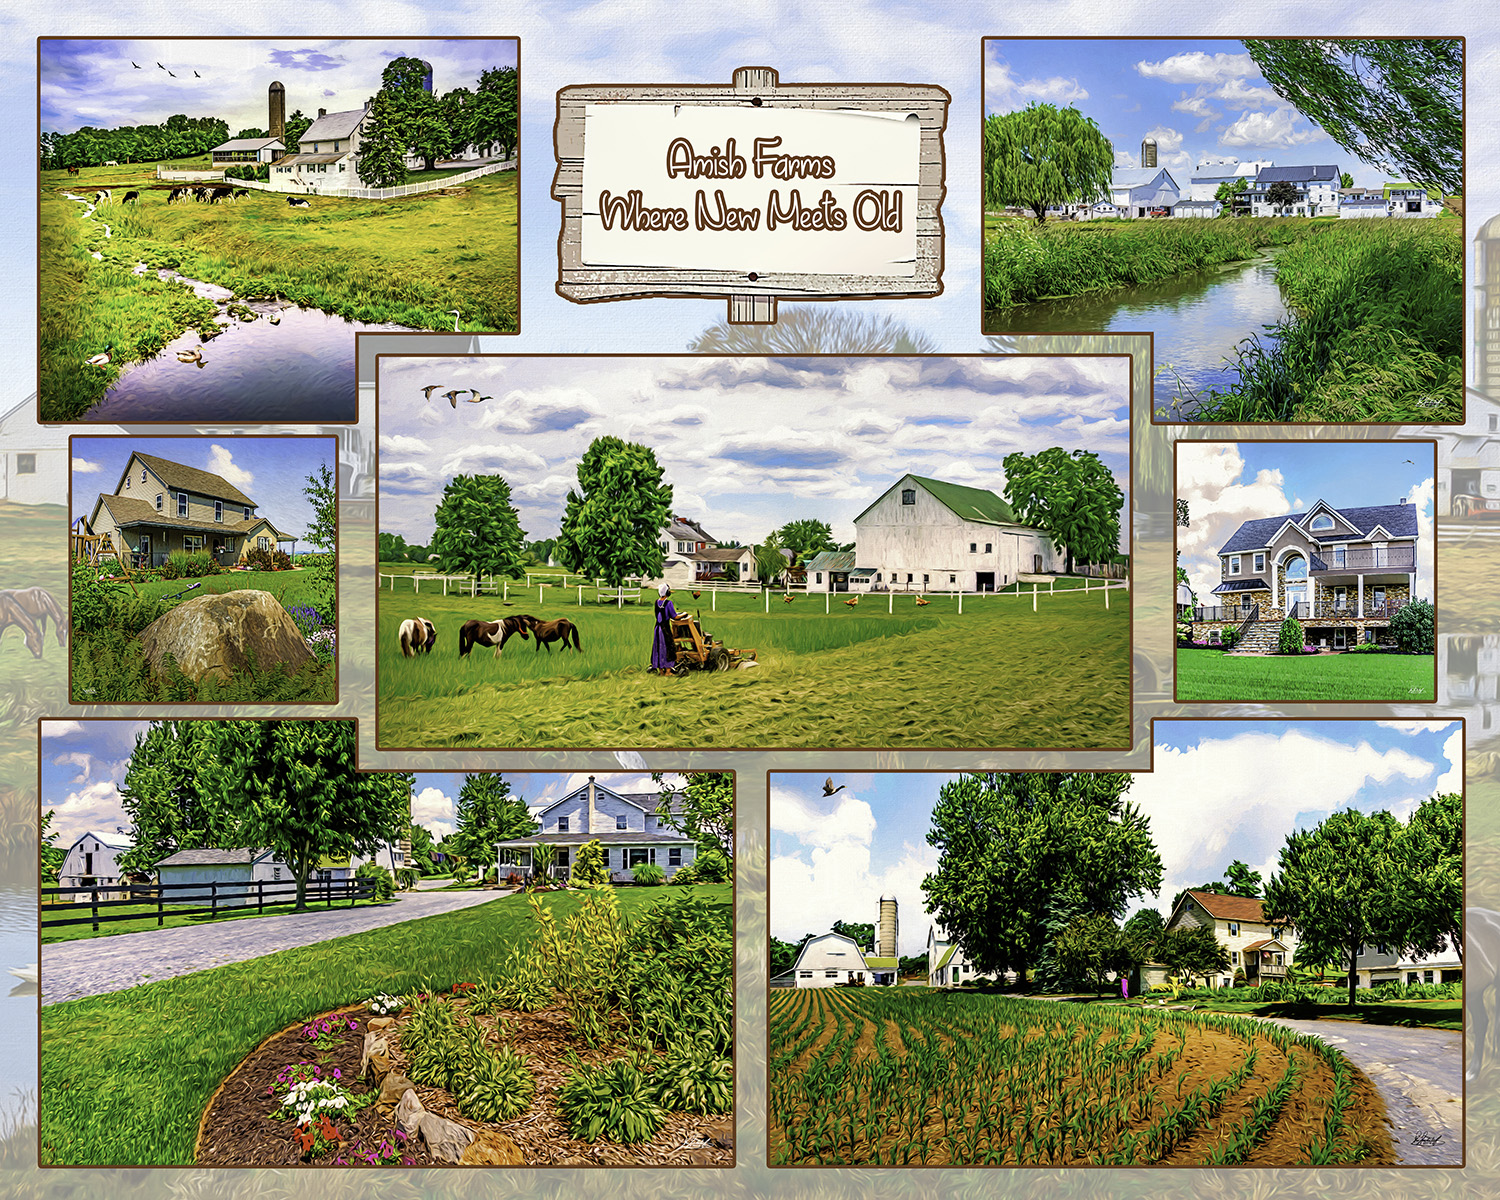 Bill Westerhoff - Amish Farms - Where New Meets Old